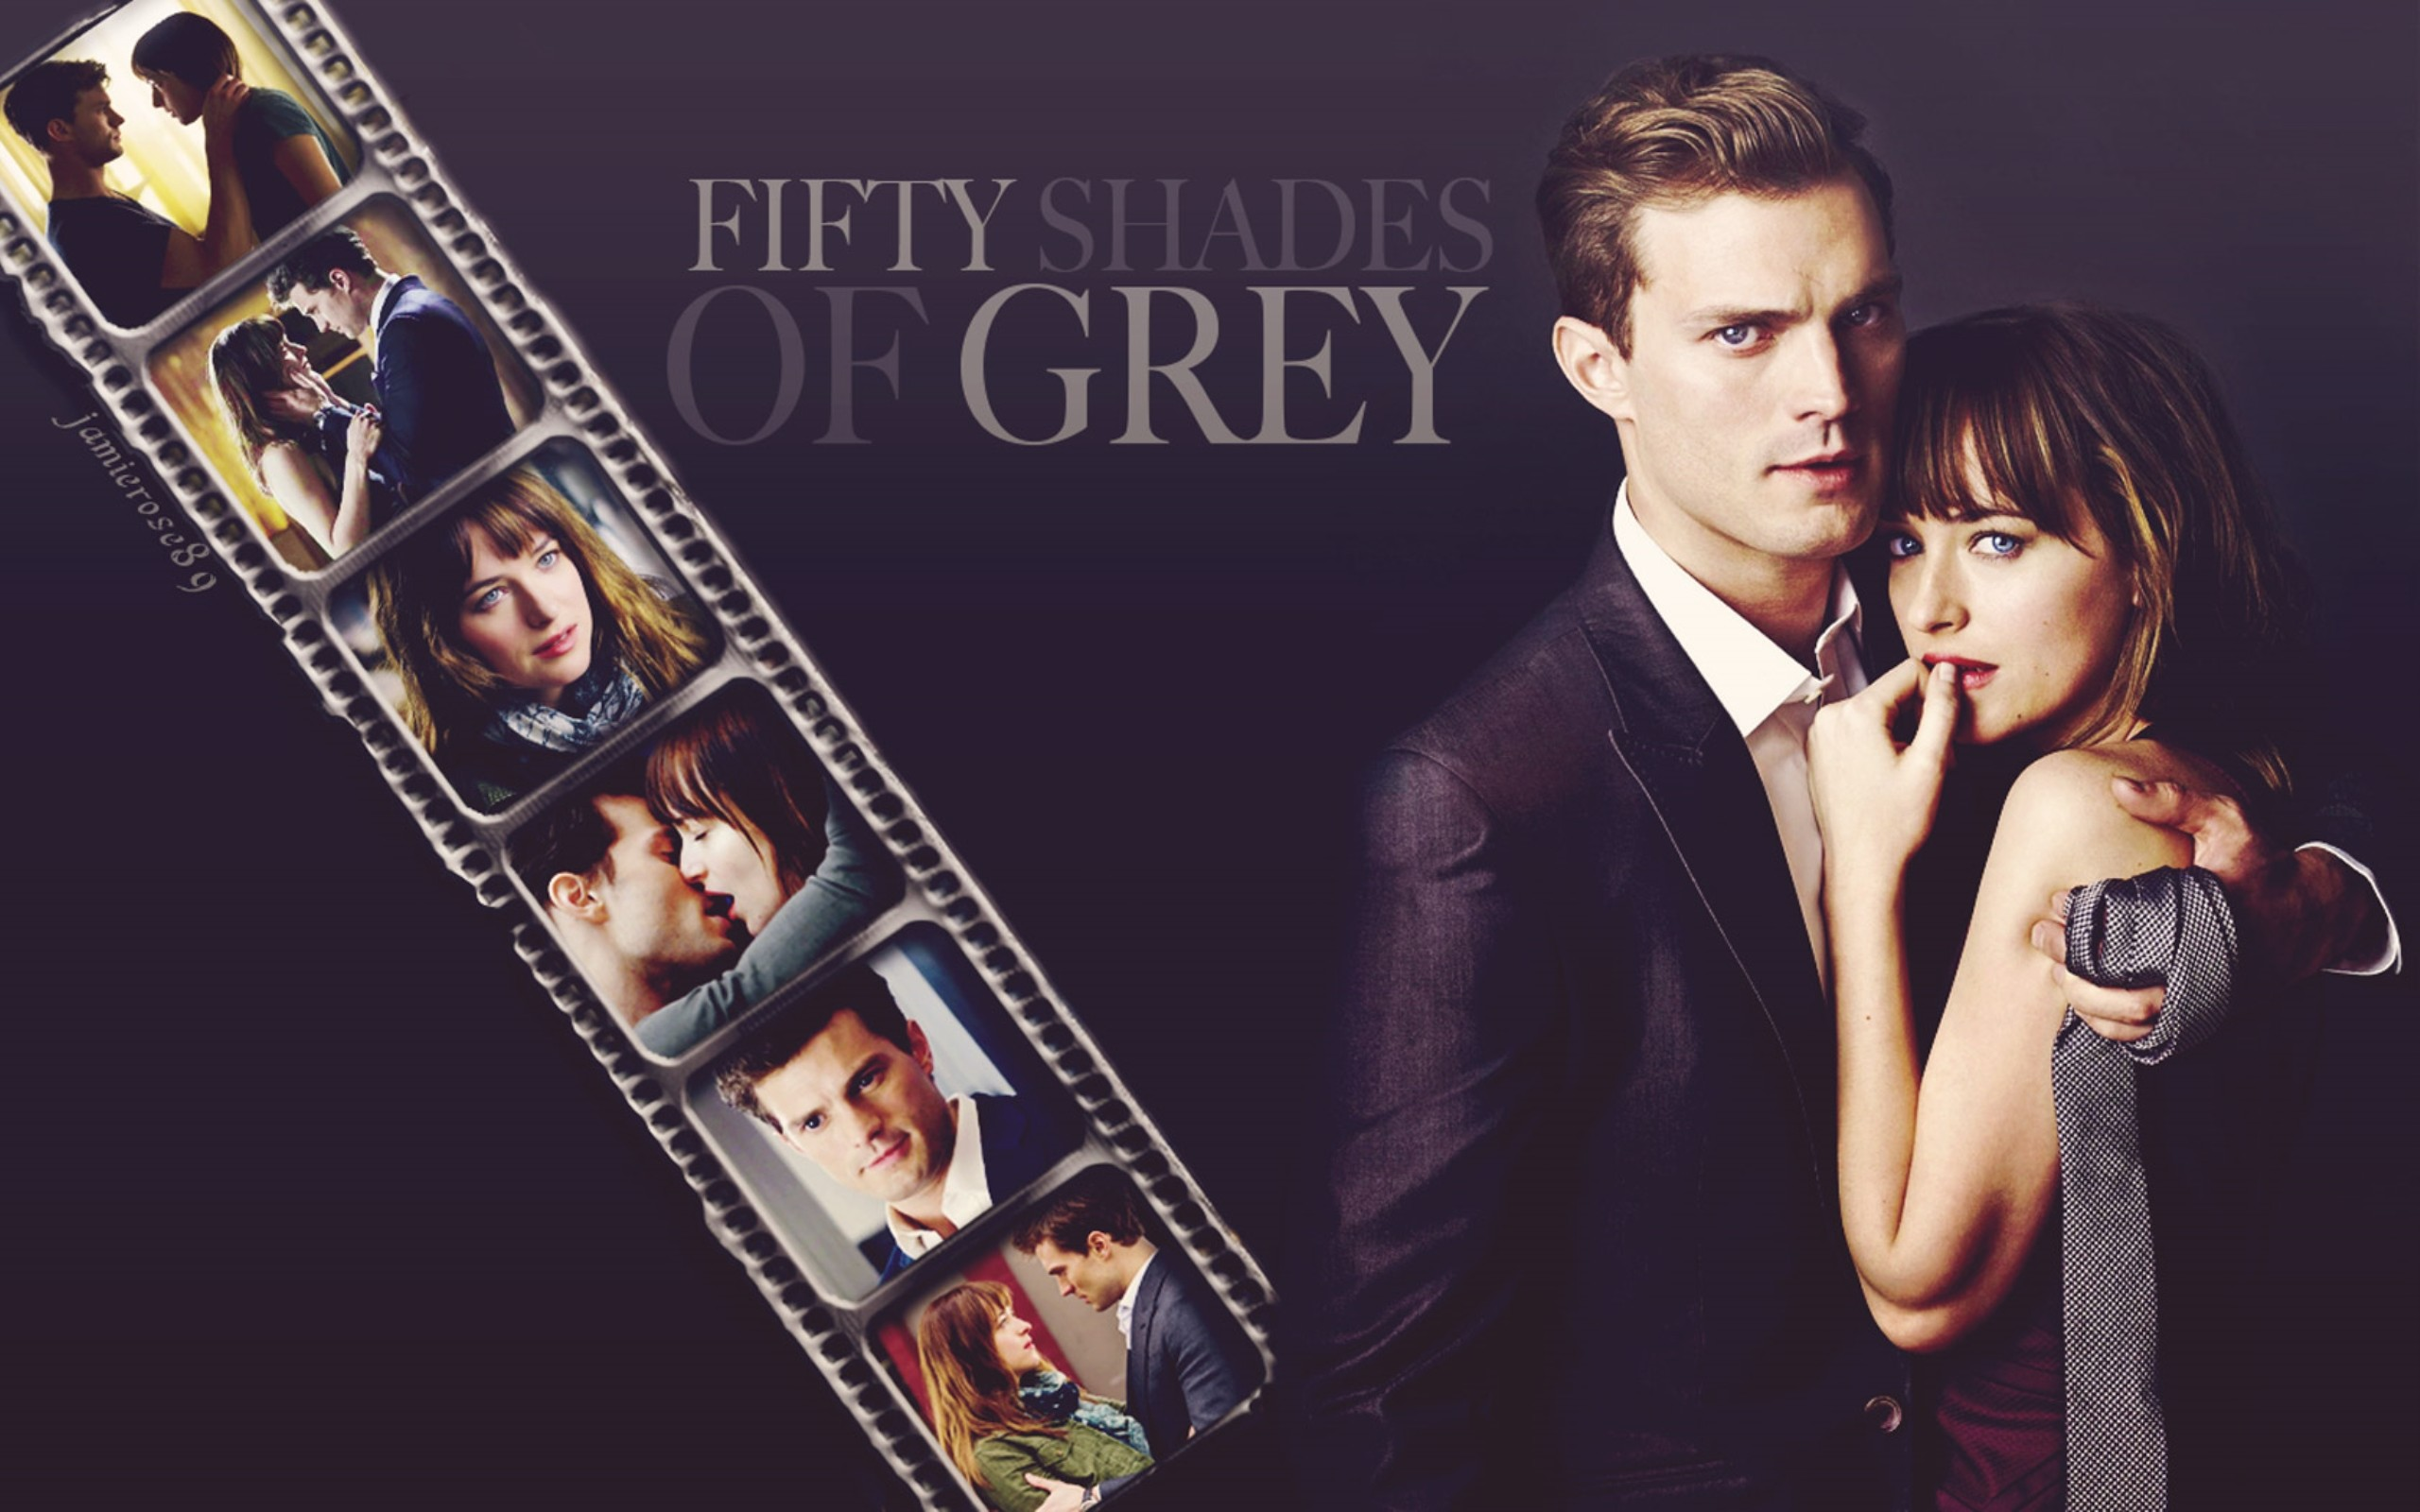 Fifty Shades of Grey Movie 2015 wallpaper